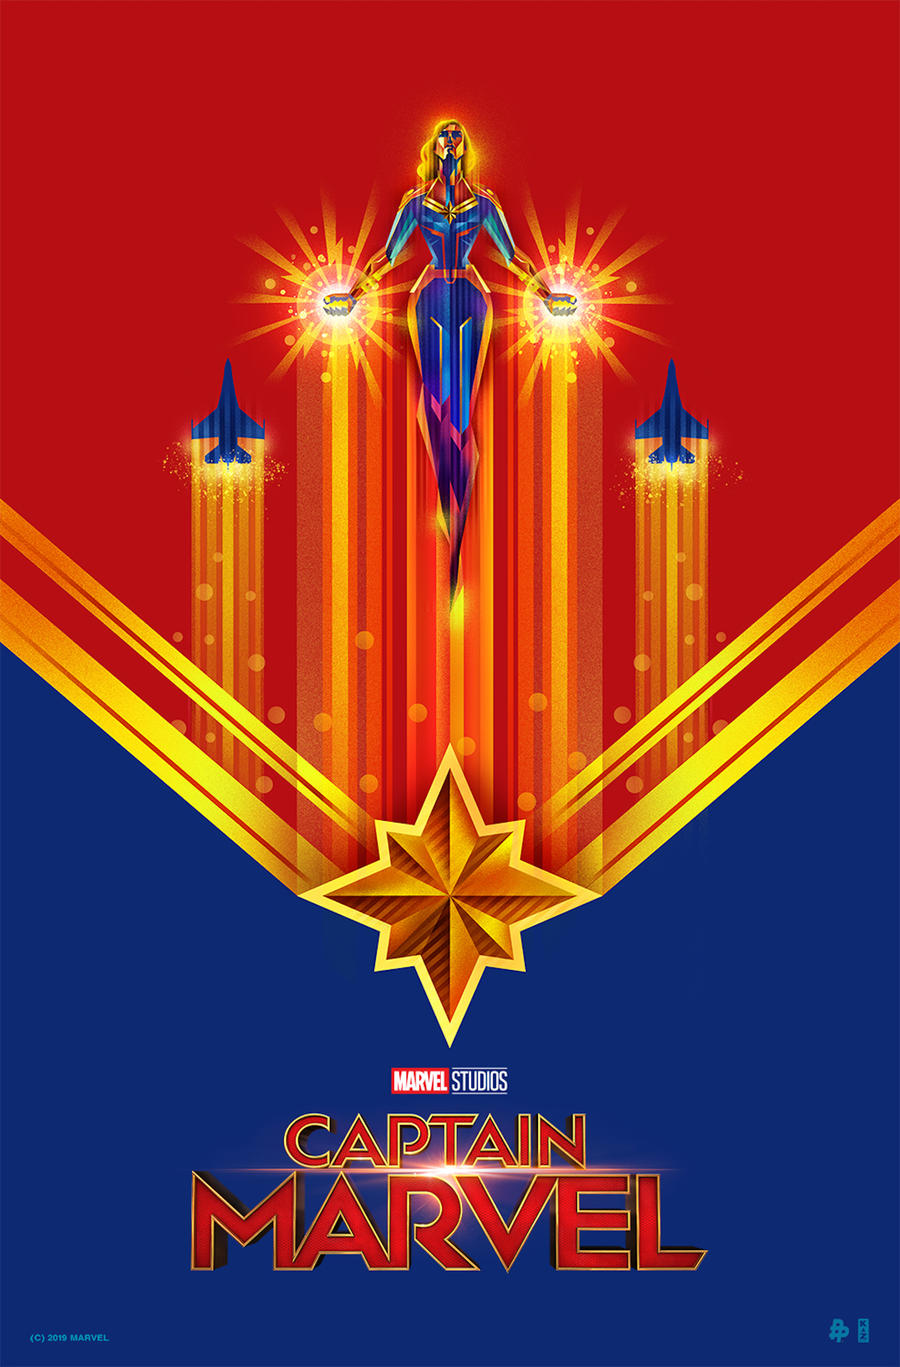 Captain Marvel Poster Art by Kaz Oomori